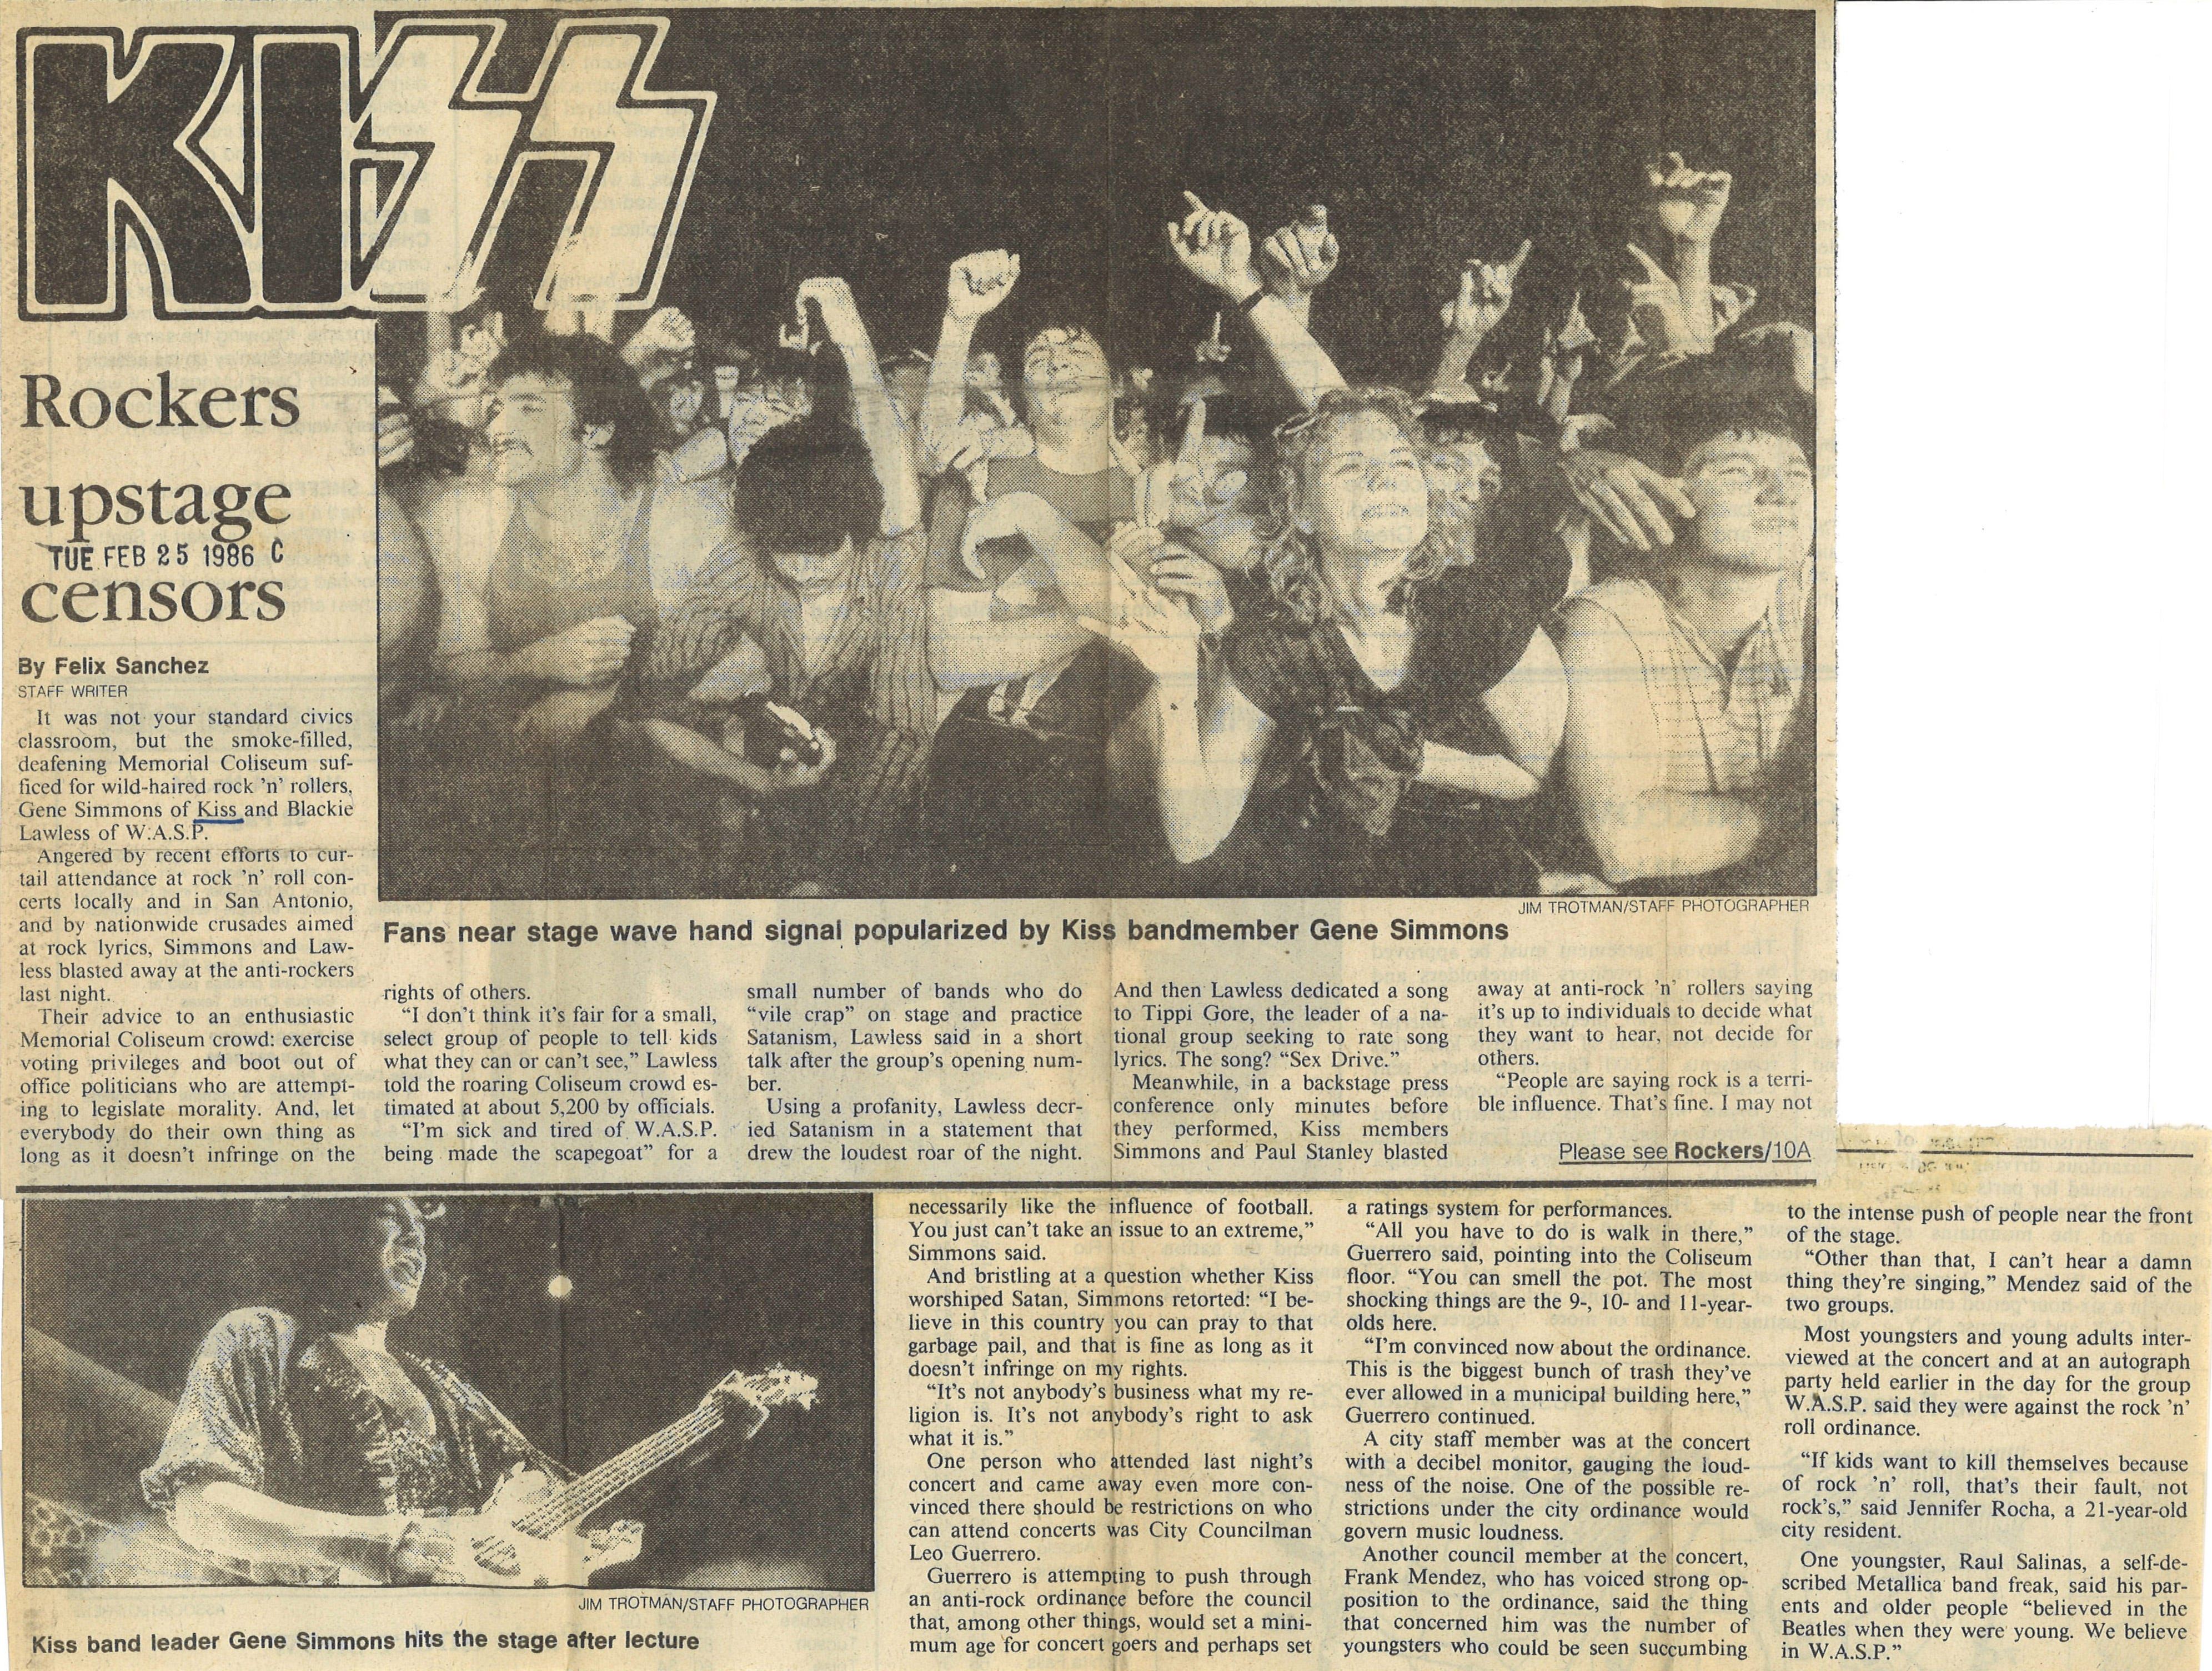 A Caller-Times article on KISS concert at Memorial Coliseum from Feb. 25, 1986.